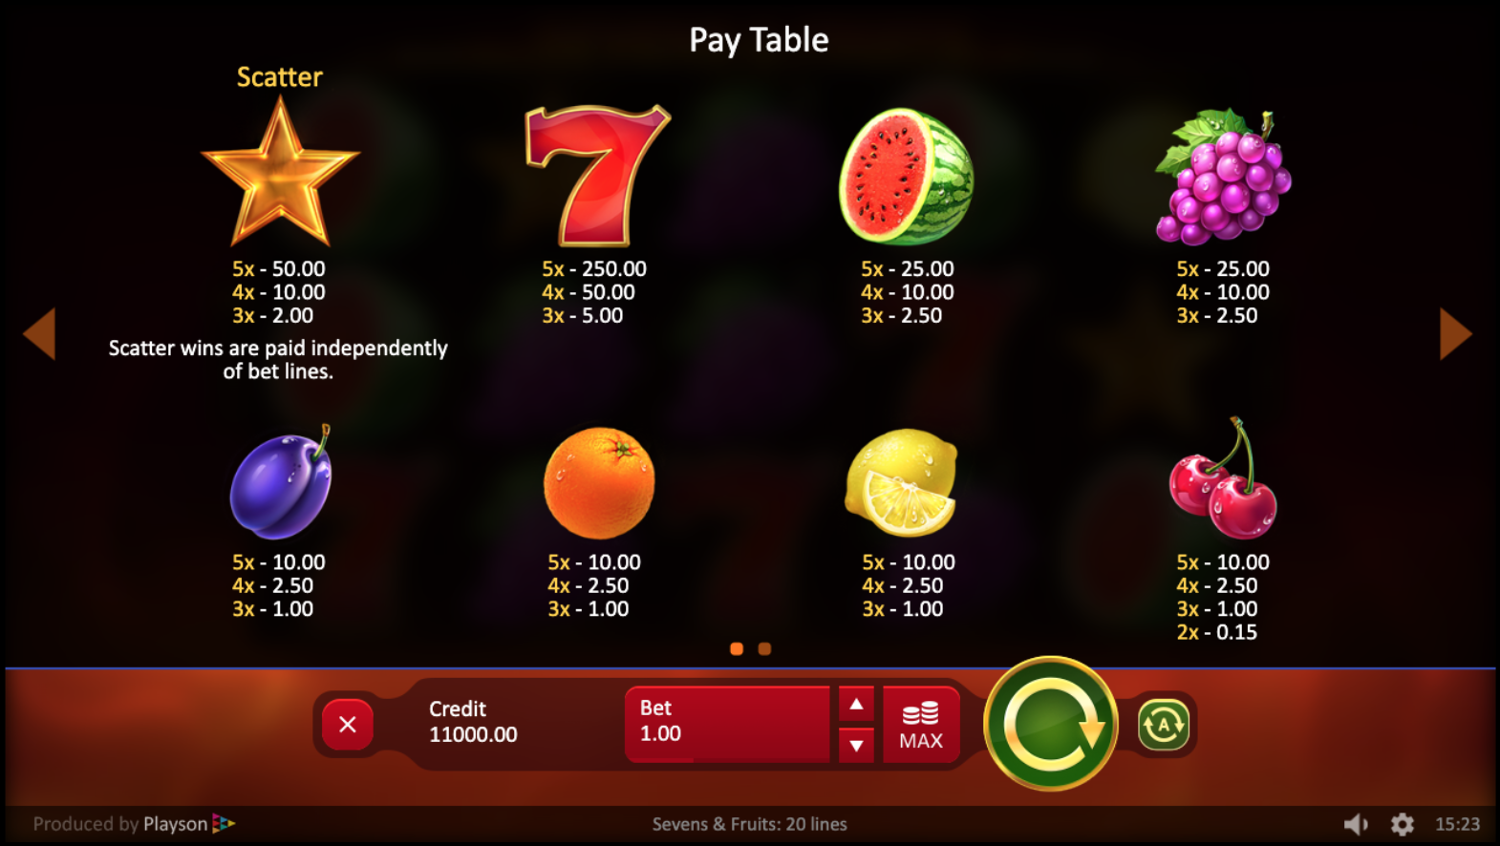 Sevens & Fruits paytable